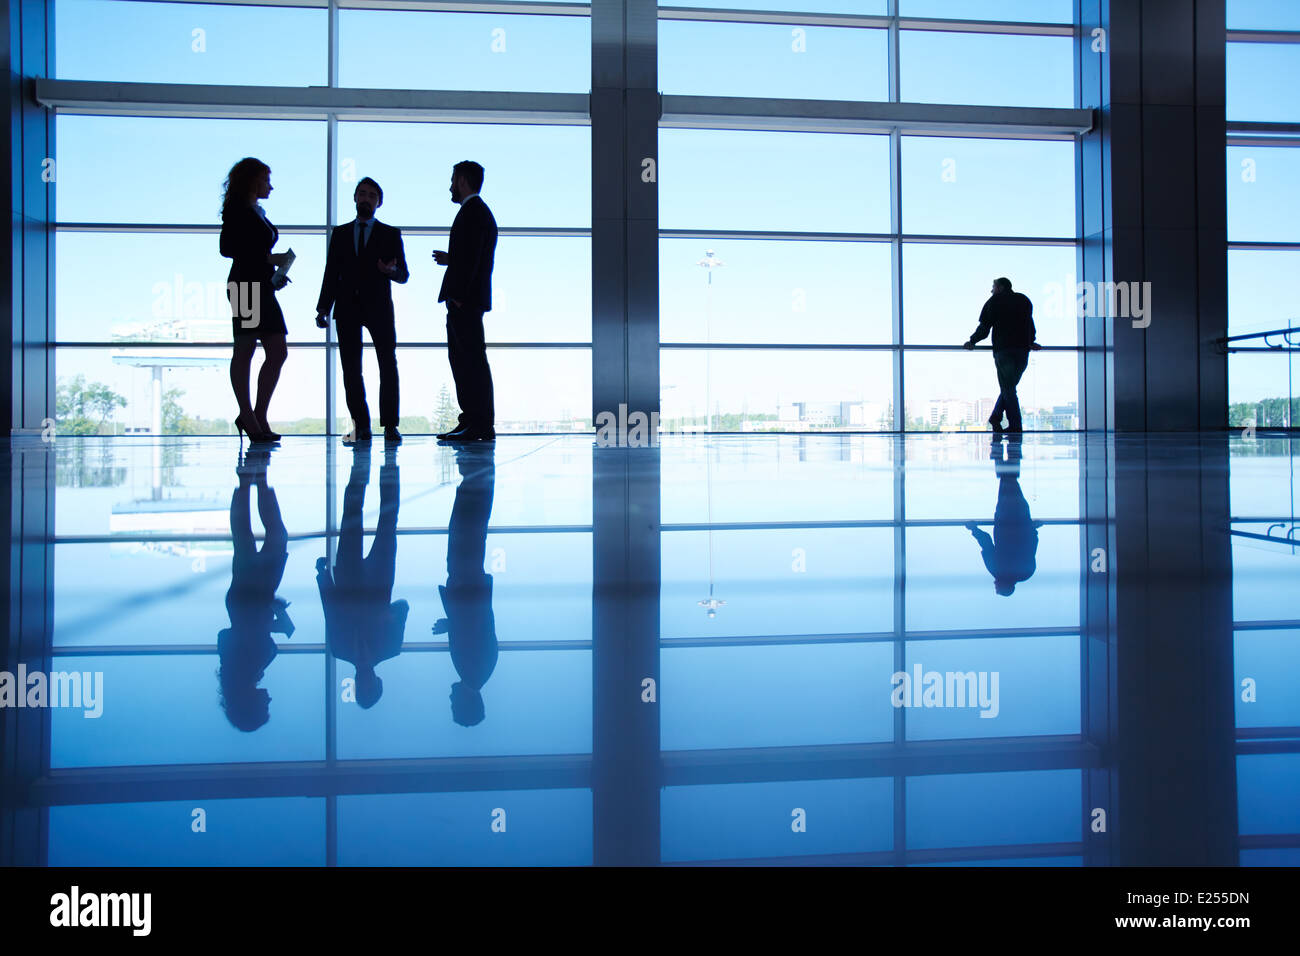 Silhouettes of several office workers standing by the window and talking - Stock Image